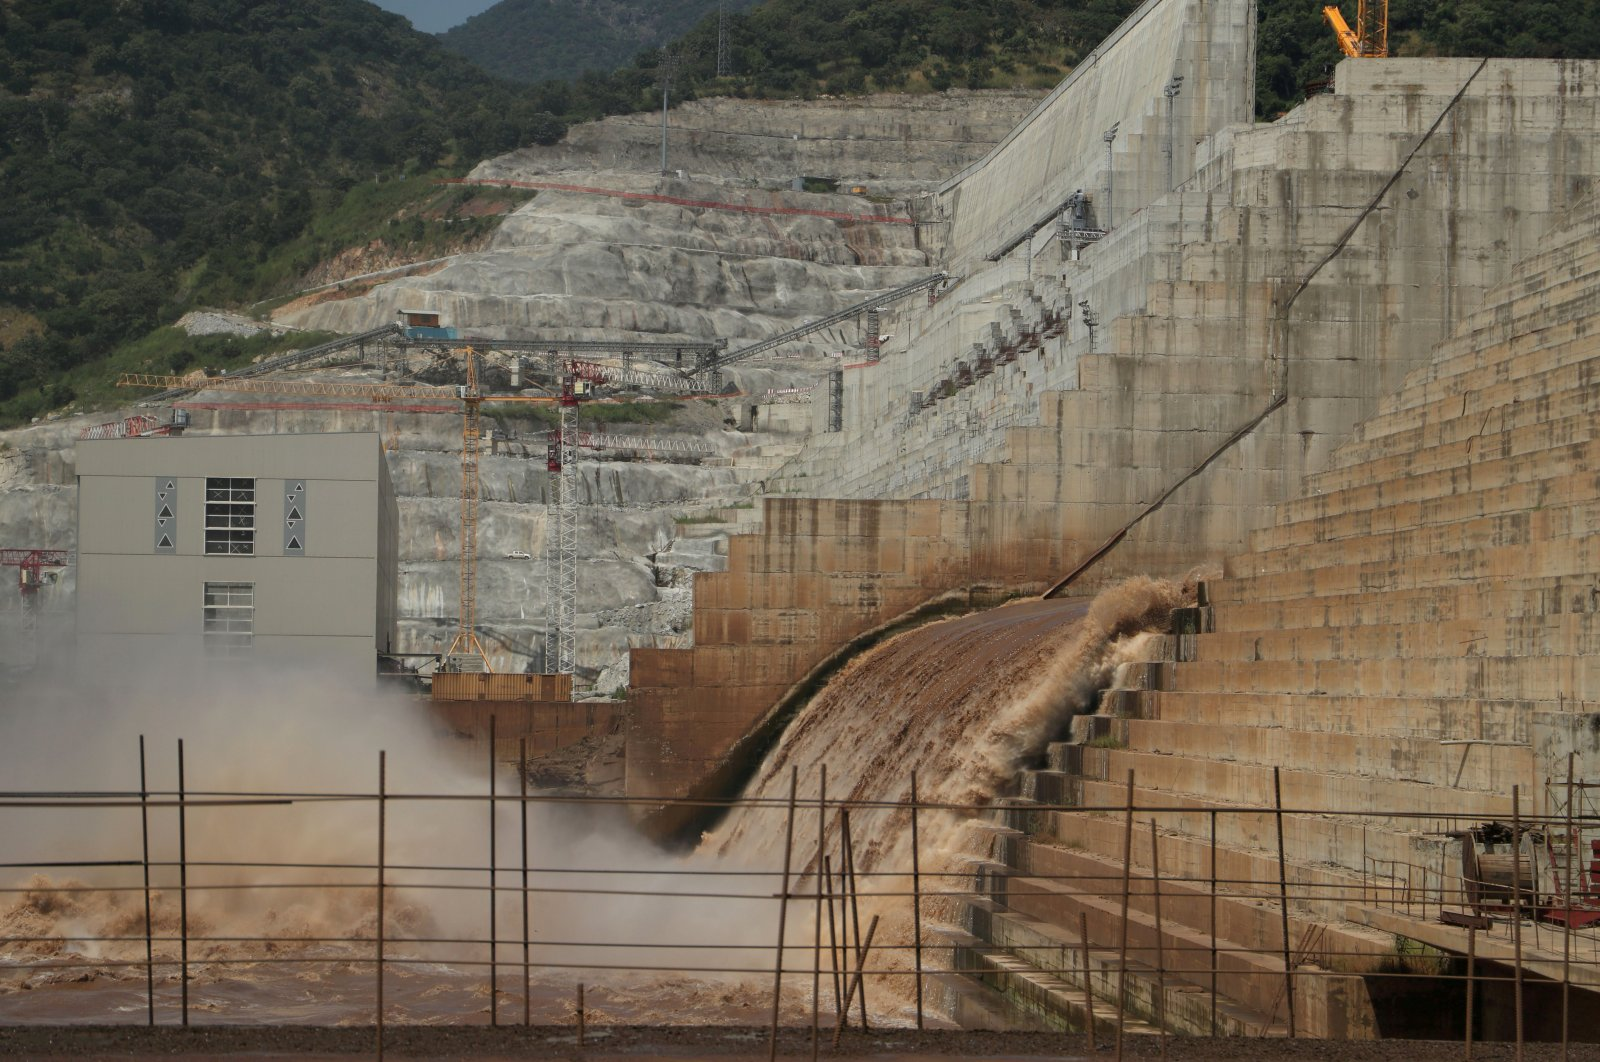 Water flows through Ethiopia's Grand Renaissance Dam as it undergoes construction work on the river Nile in Guba Woreda, Benishangul Gumuz Region, Ethiopia, Sept. 26, 2019. (Reuters Photo)